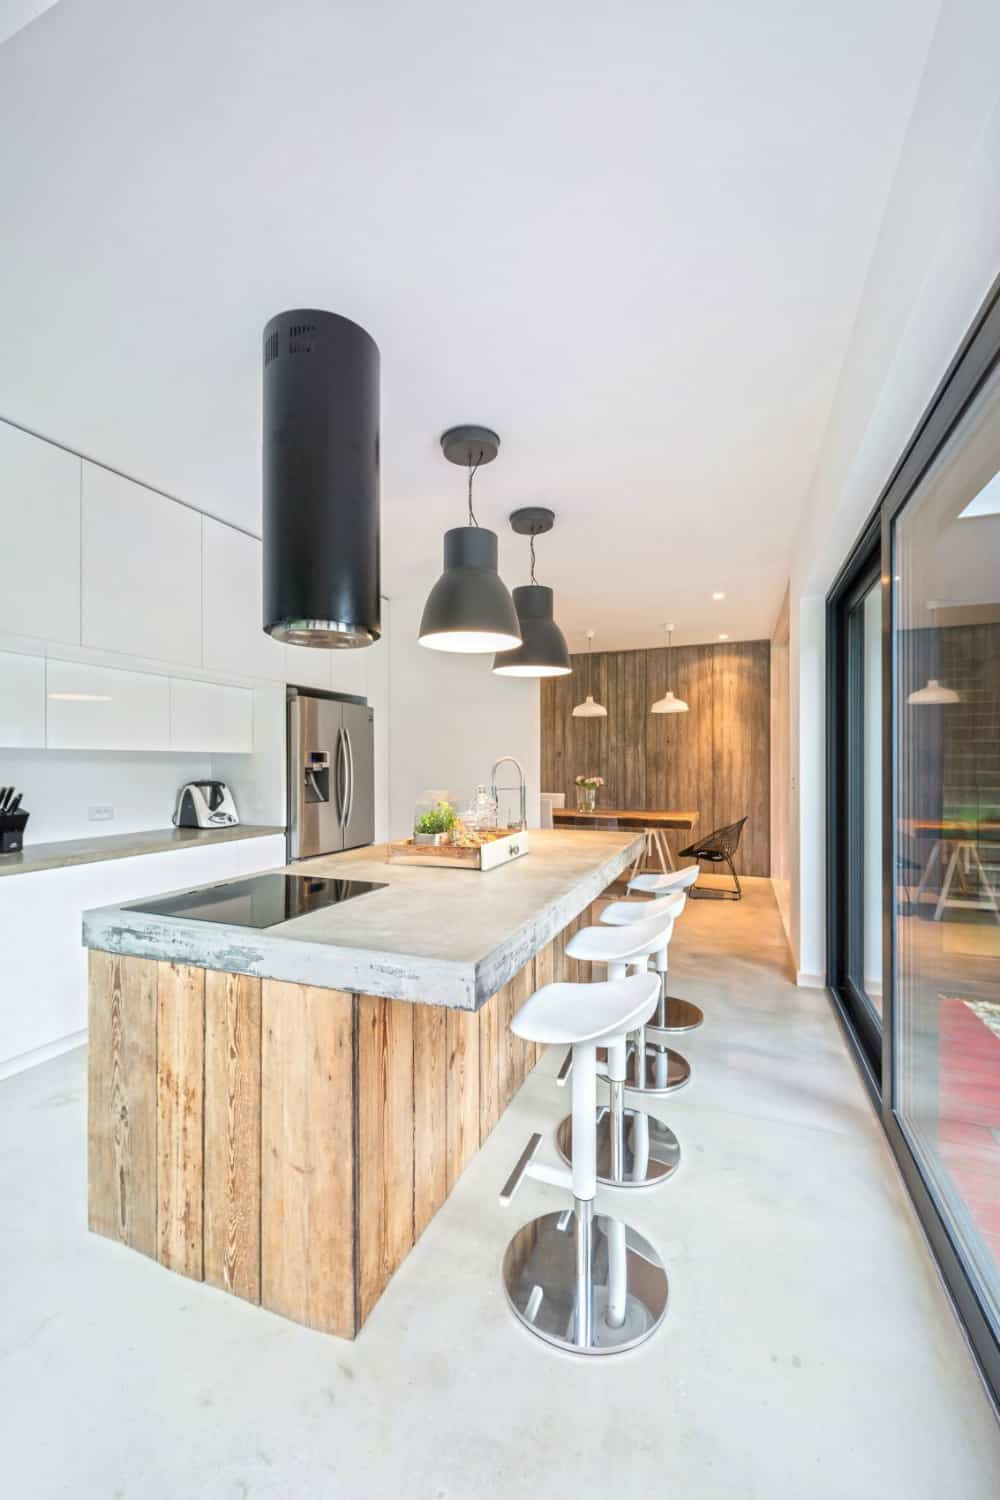 Contemporary stools instantly give the wood and concrete combination more contemporaneity